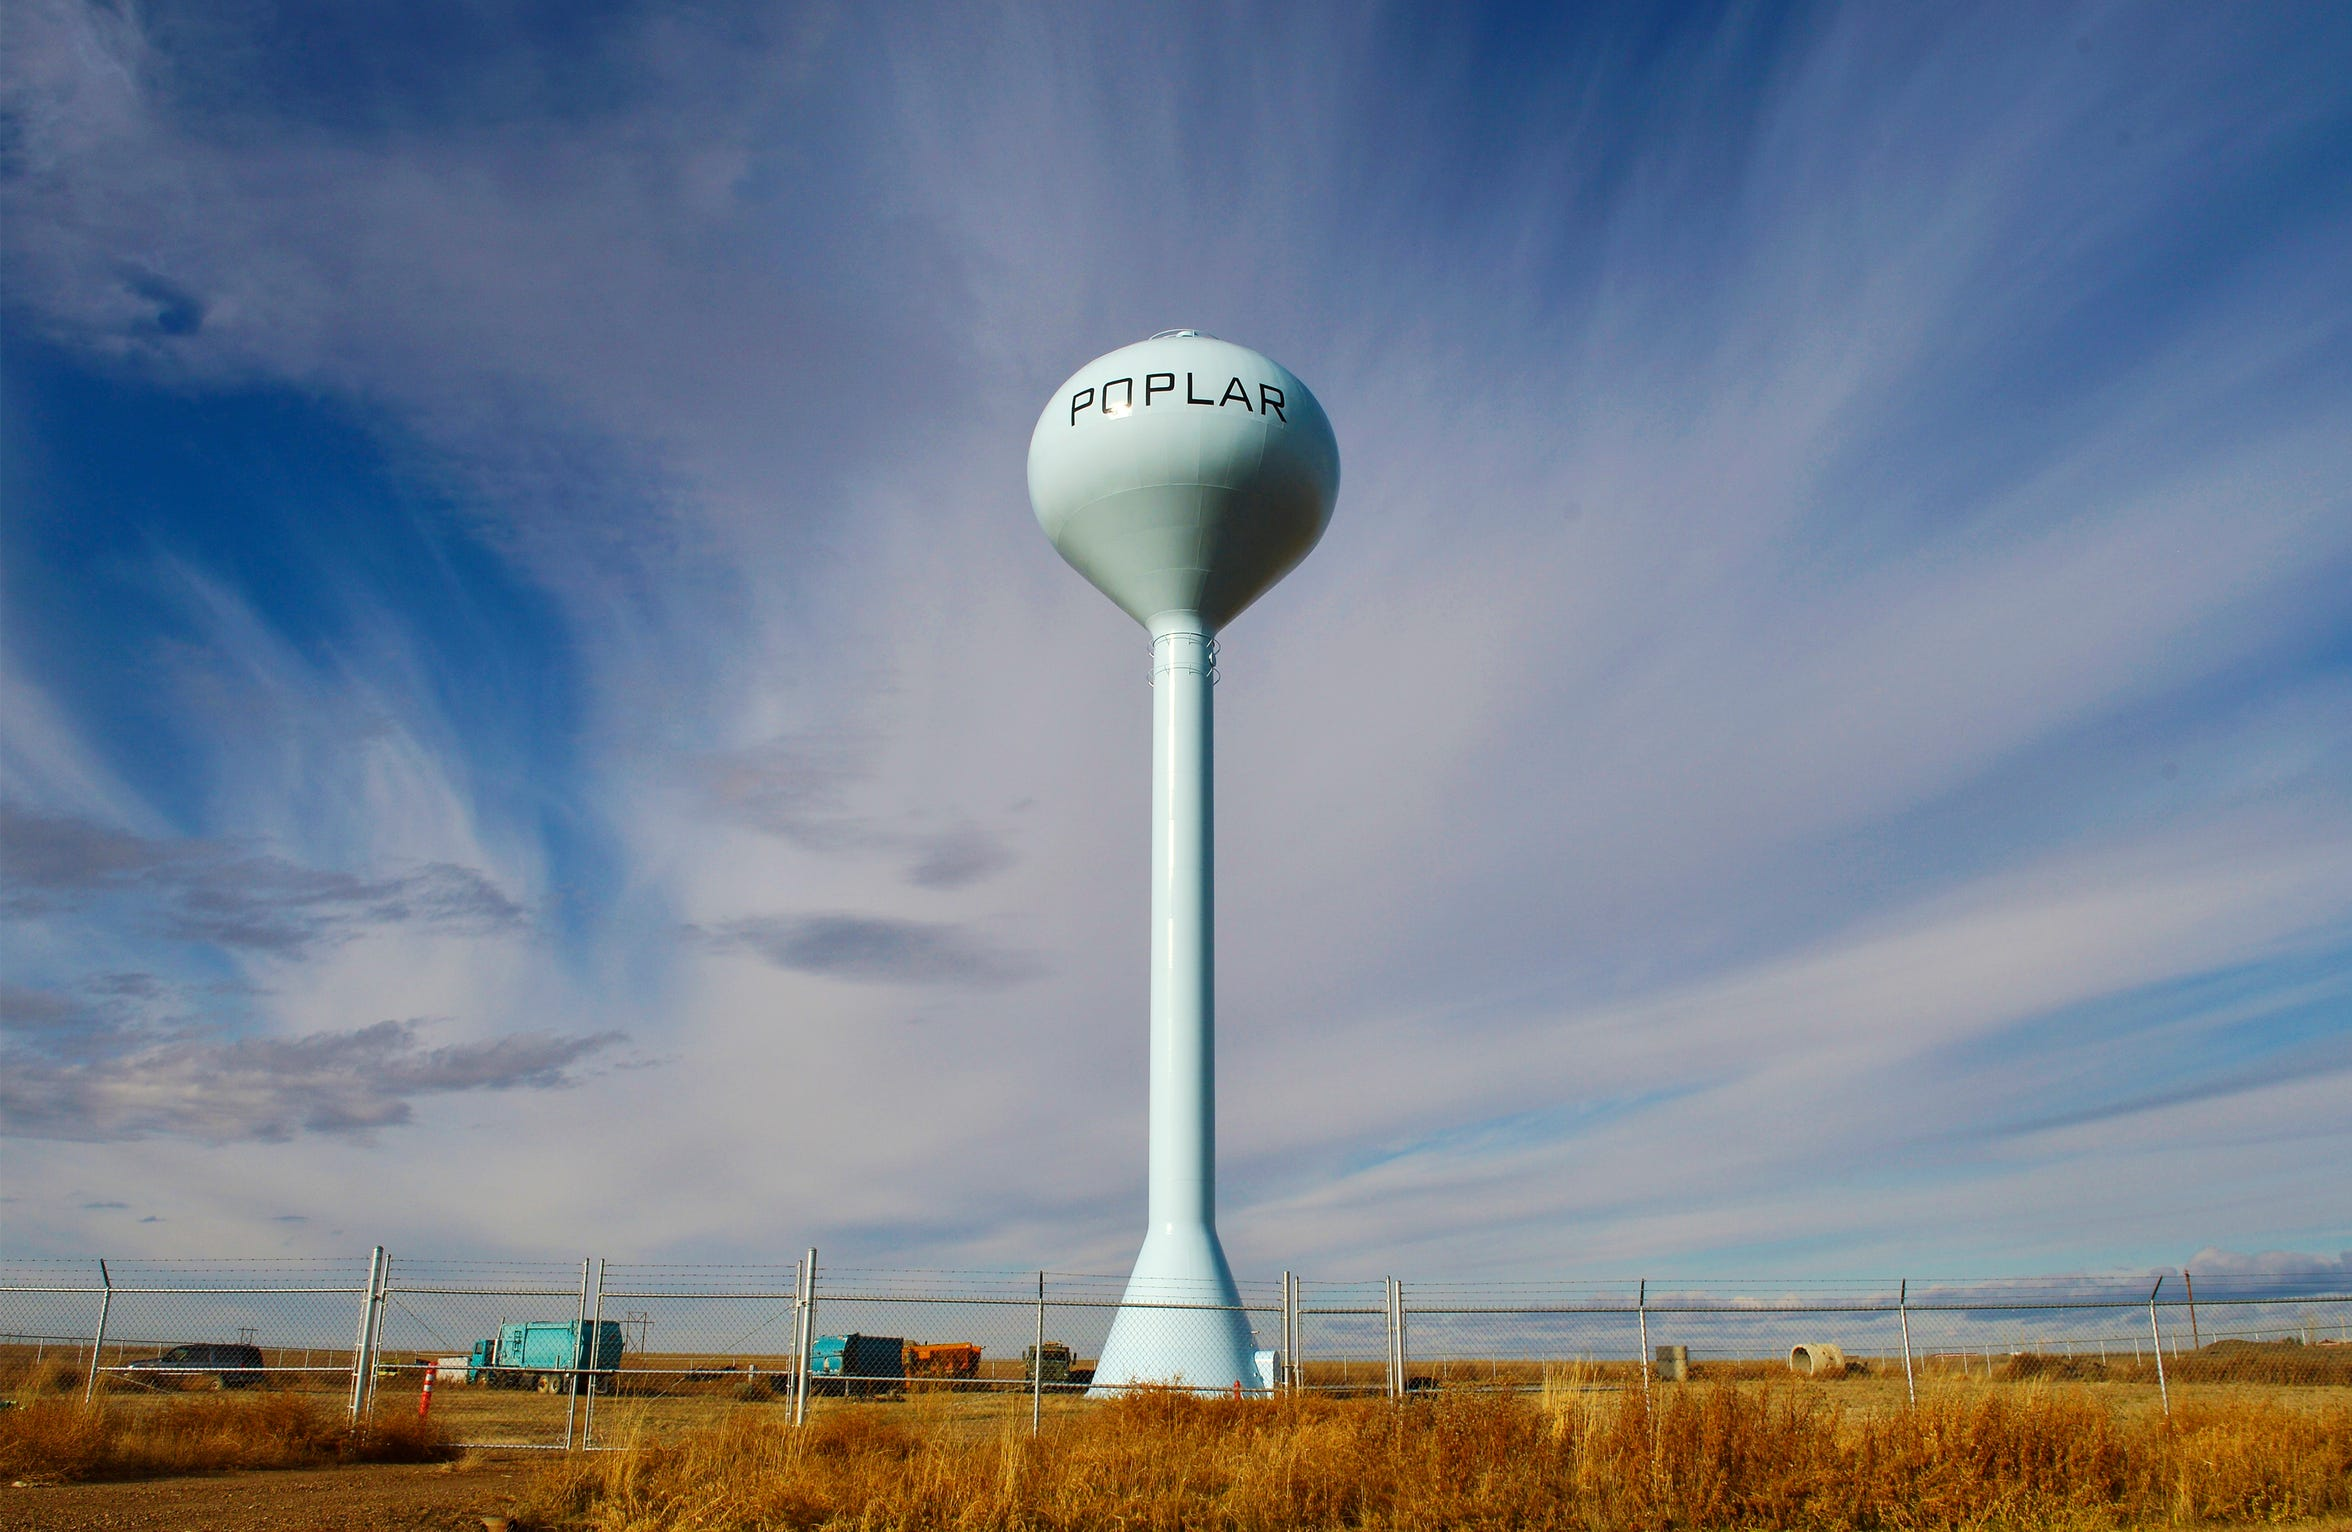 Water tower in Poplar, Mont.